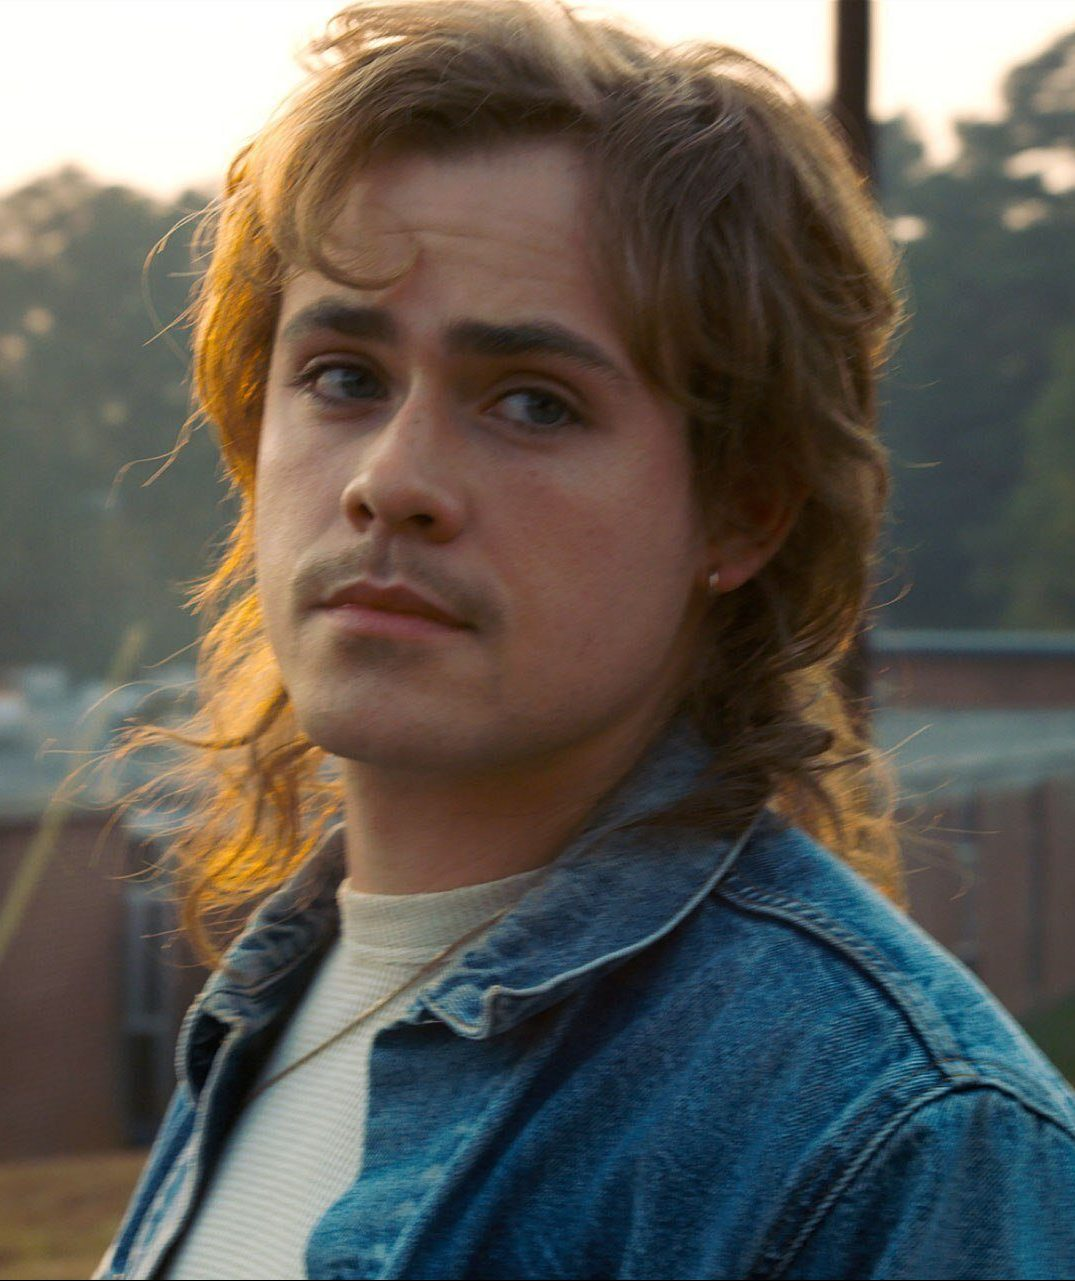 STRANGER 17 e1562320260342 20 Things You Never Knew About The Stranger Things Cast In Real Life